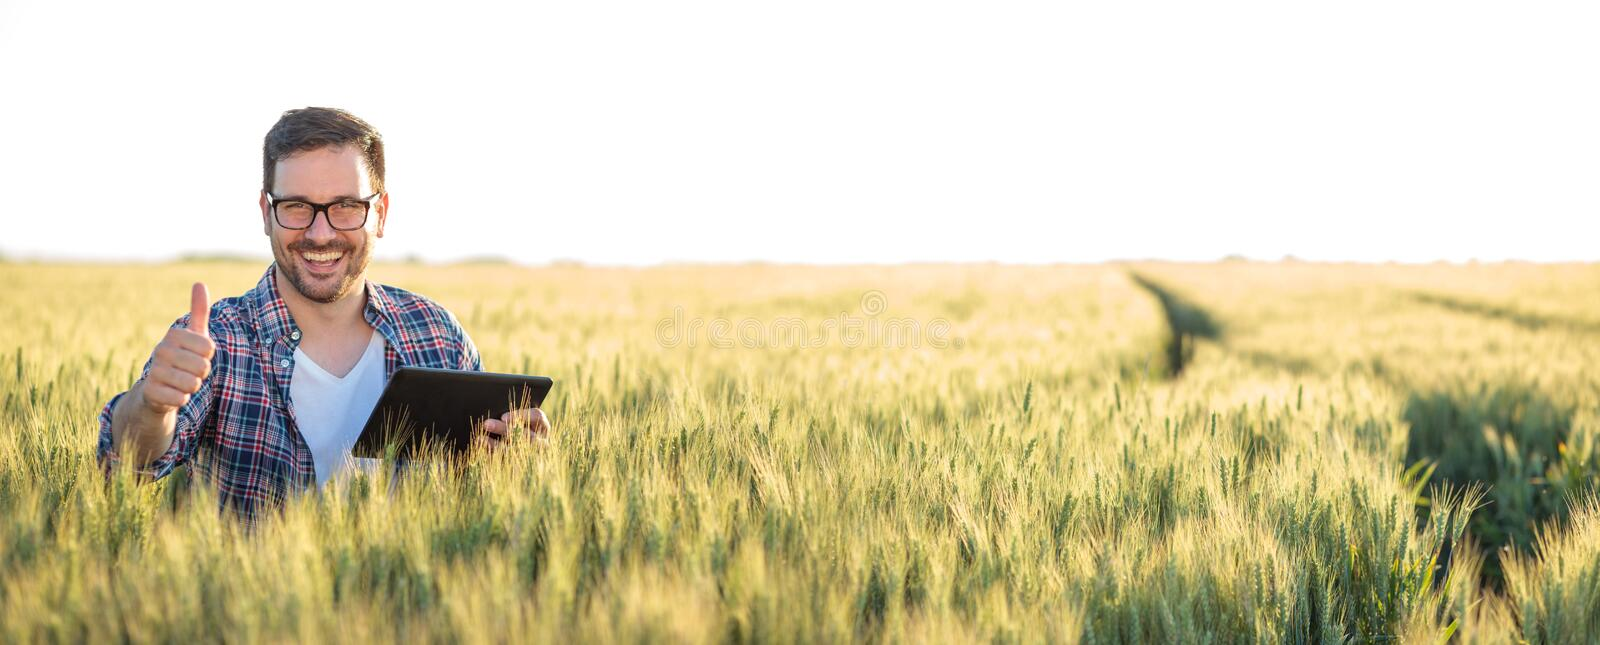 Smiling happy young farmer or agronomist using a tablet in a wheat field. Showing thumbs-up and looking directly at camera. Wide angle panoramic photo. Organic royalty free stock photos